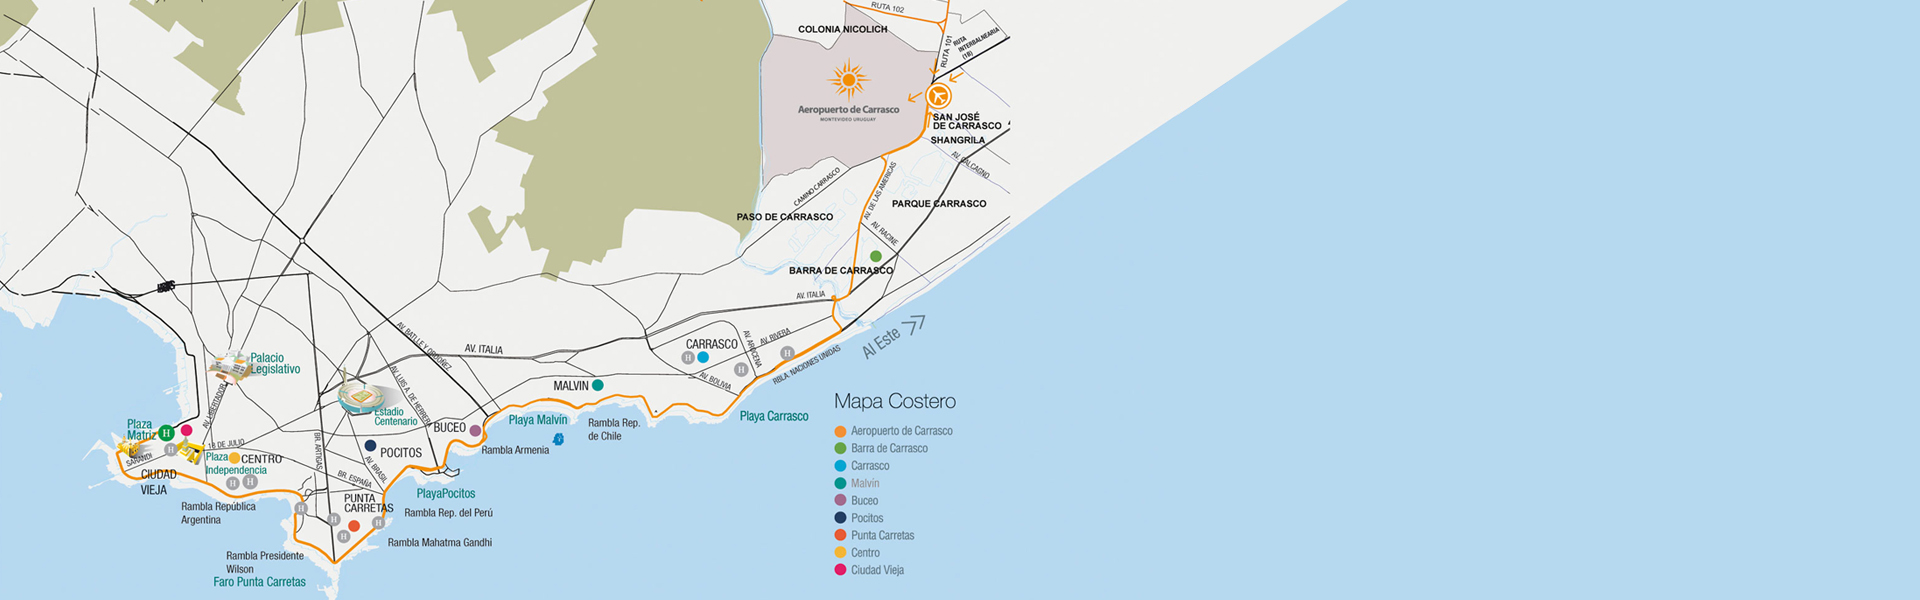 Location map aeropuerto de carrasco montevideo uruguay here are our airports plans with all the service pictograms and premises found in it gumiabroncs Image collections